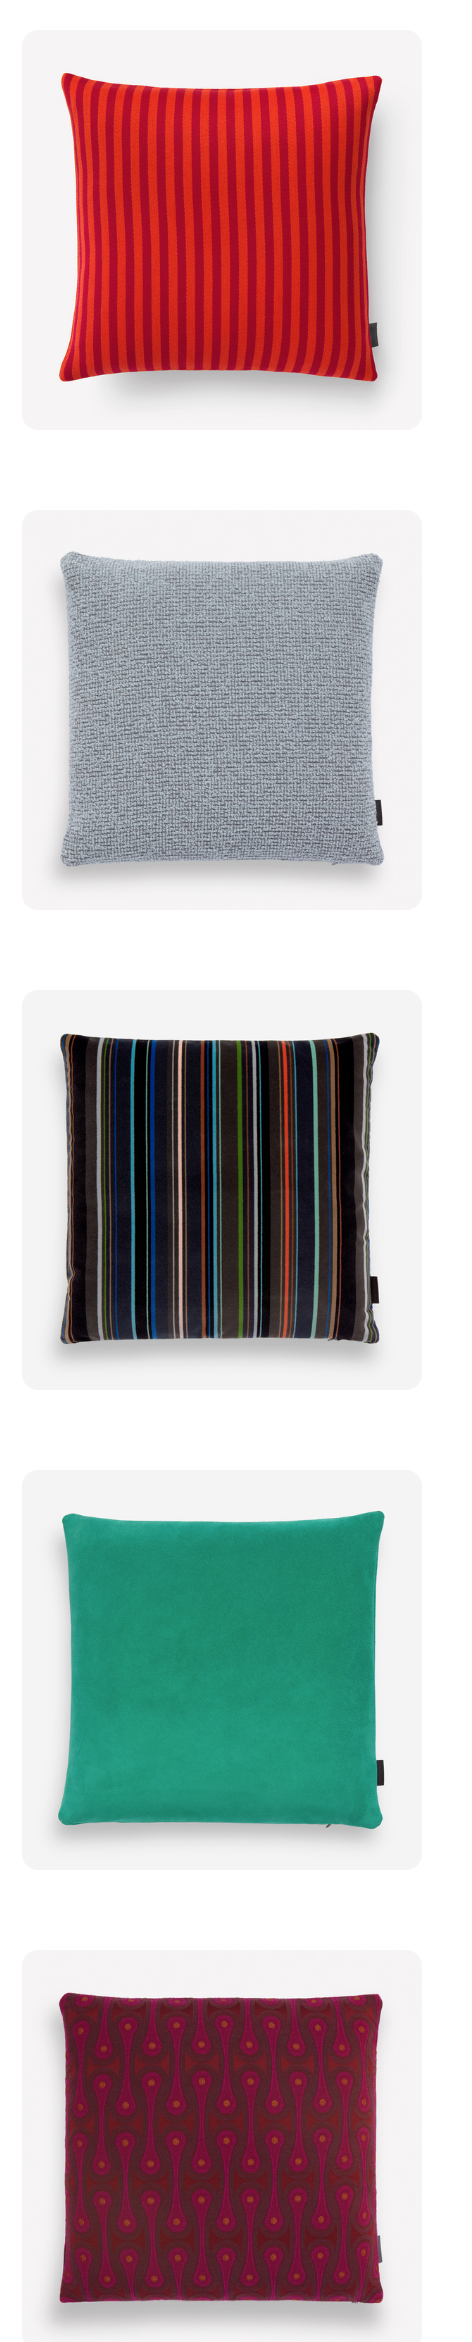 Our partner maharam makes many wonderful pillows including some